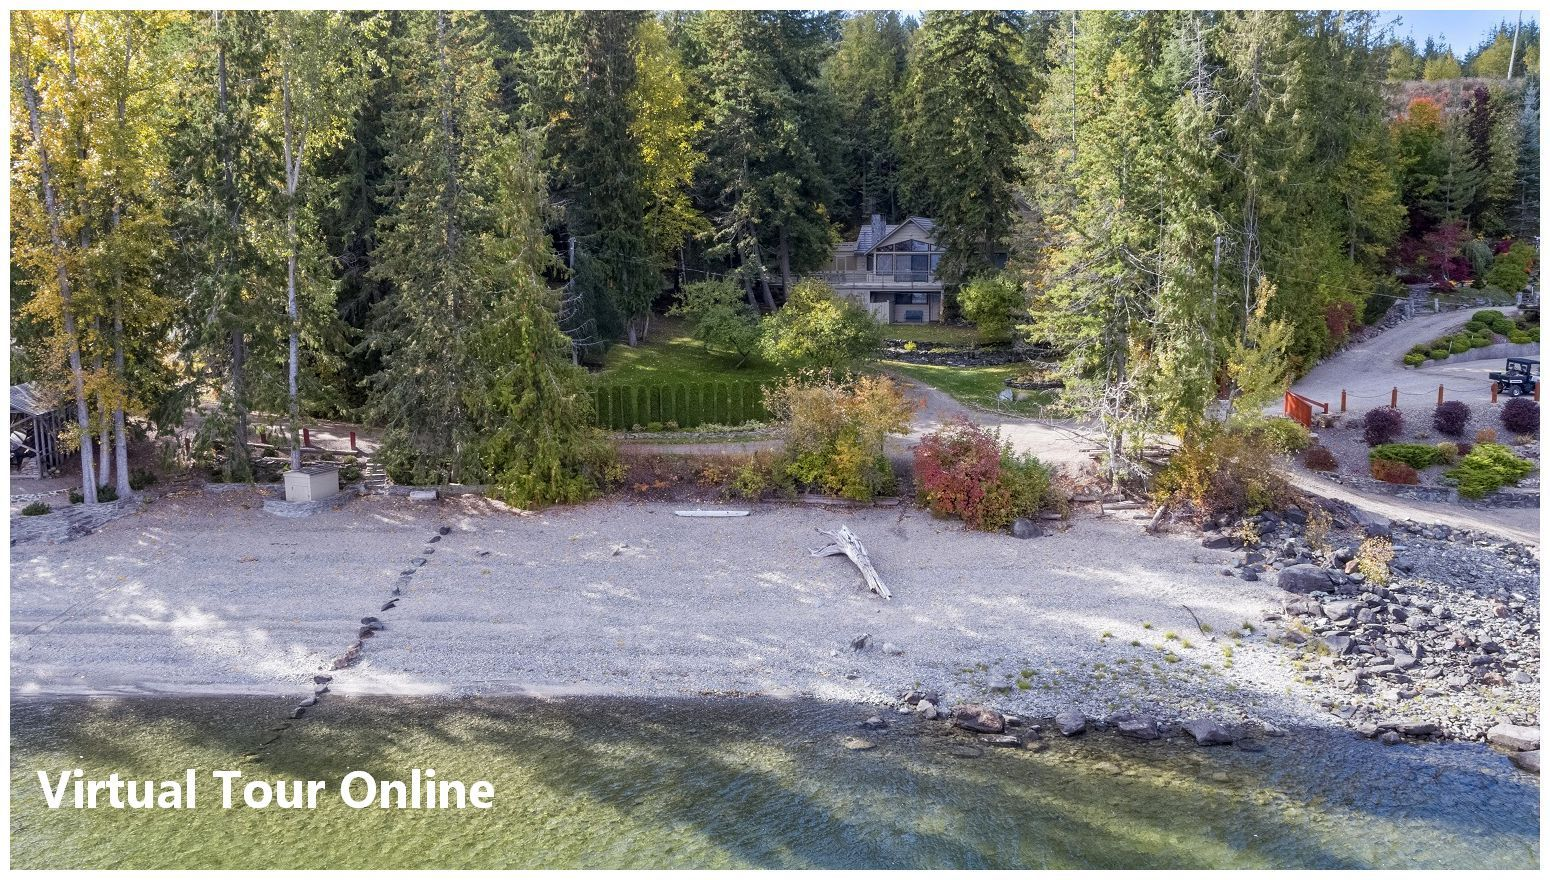 Main Photo: 4177 Galligan Road: Eagle Bay House for sale (Shuswap Lake)  : MLS®# 10204580